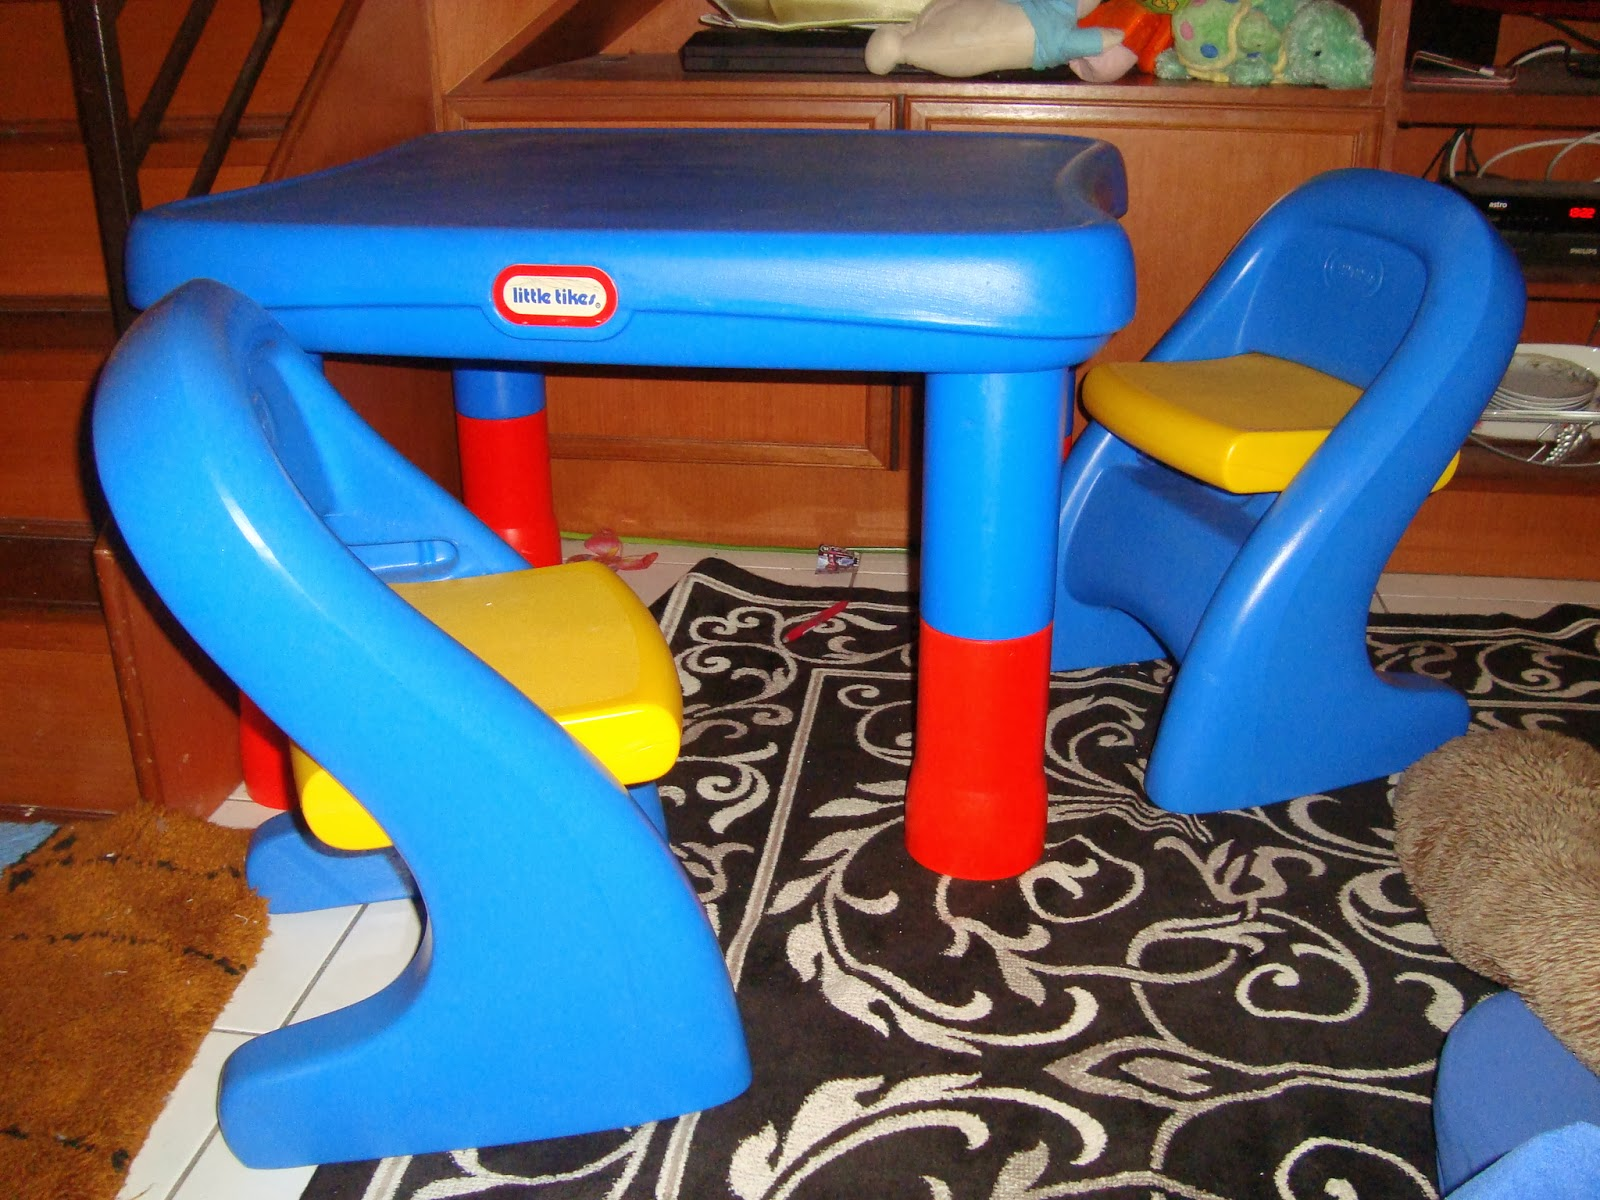 Little Tikes Table And Chairs Set Toys R Us Wingback Wicker Chair Kedai Bundle Thetottoys 7749 Adjustable